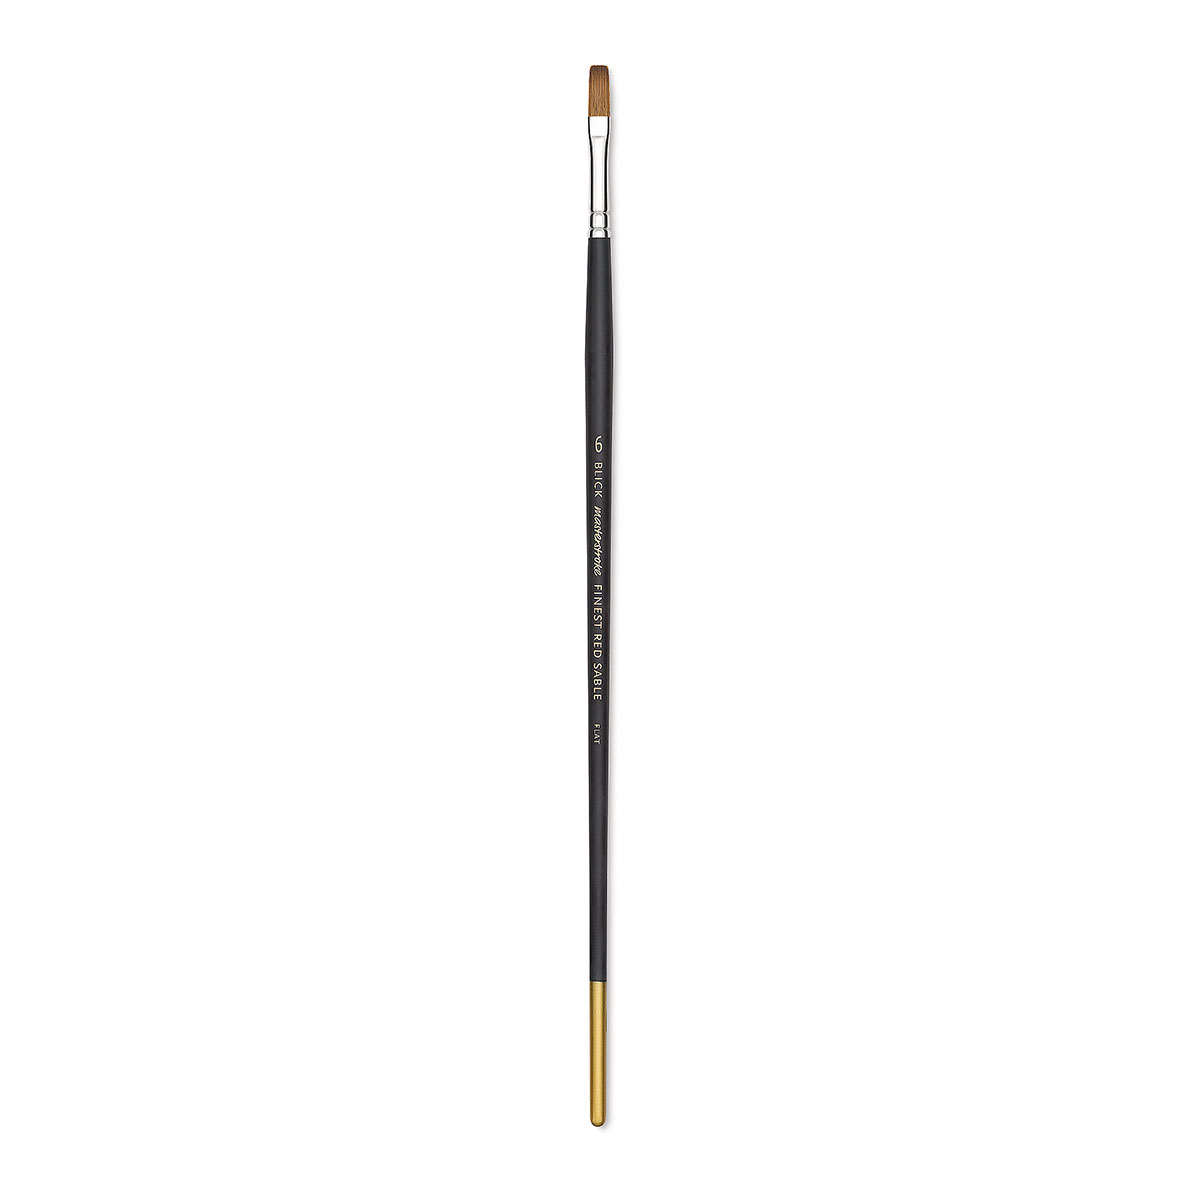 Blick Masterstroke Finest Red Sable Brush - Flat, Size 6, Long Handle